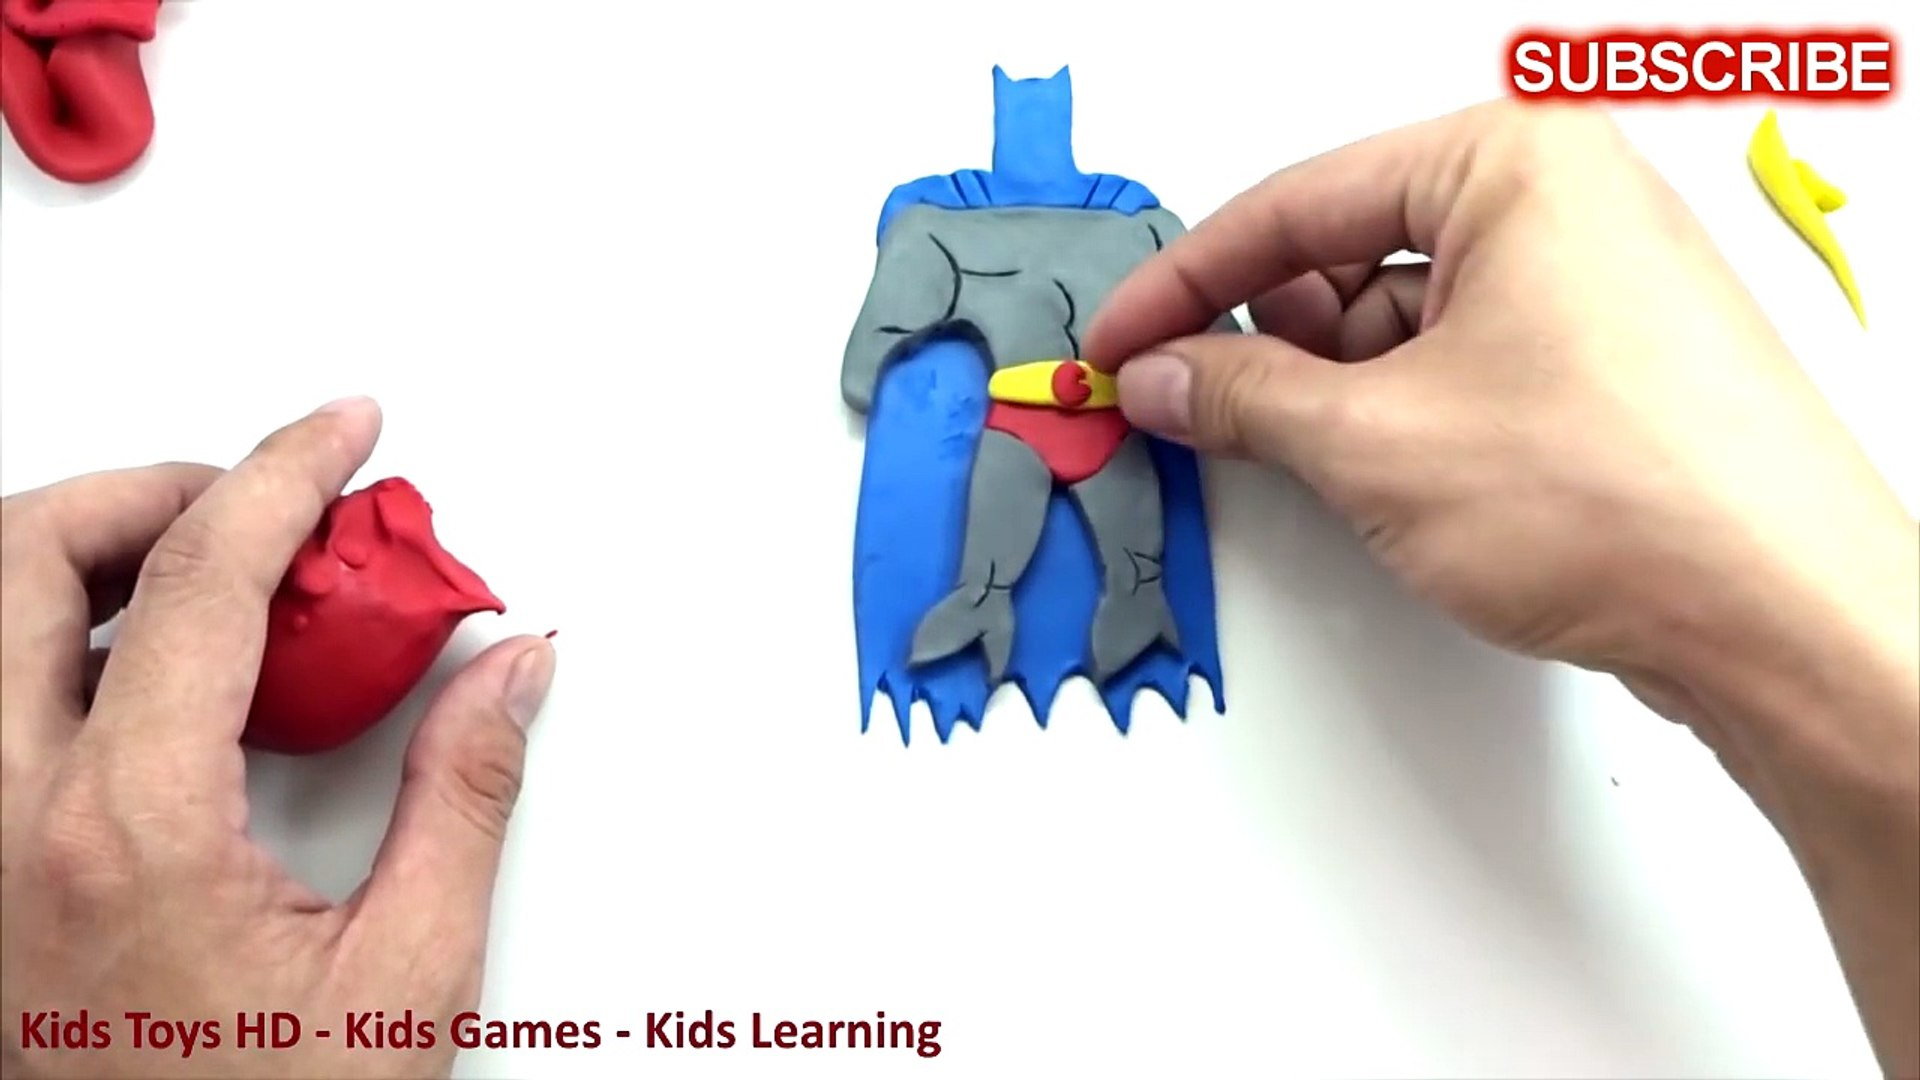 Batman Vs Superman Play Doh How To Make Super Heroes With Play Doh Part 2 Dailymotion Video